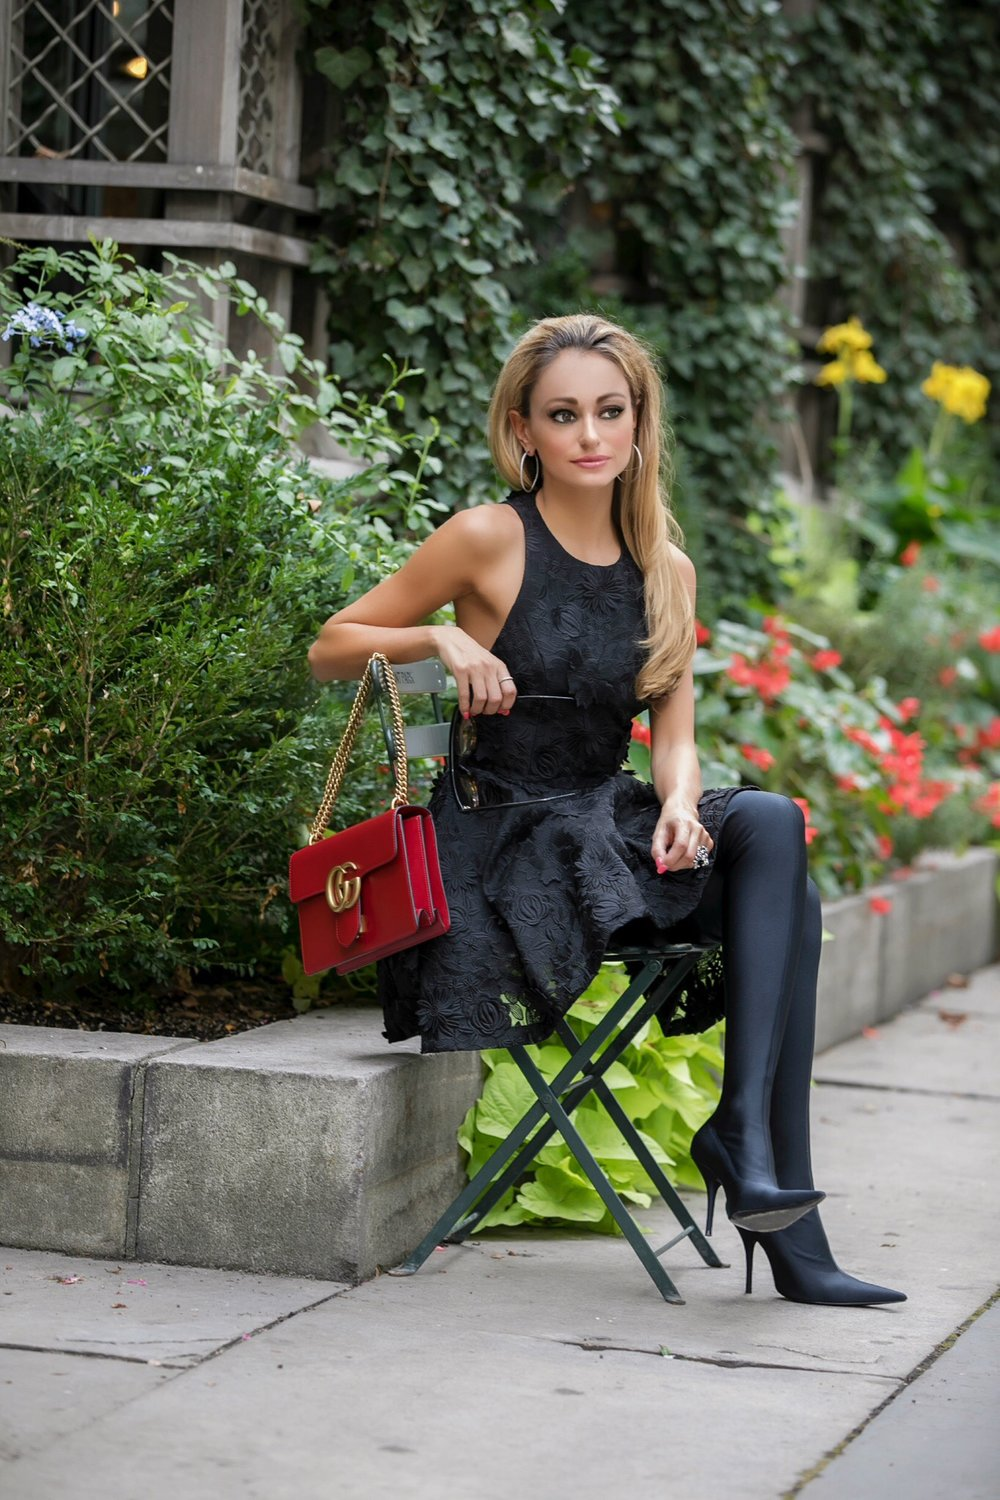 Lauren Recchia in Bryant Park wearing an Alice and Olivia dress, Balenziaga boots, and Gucci bag